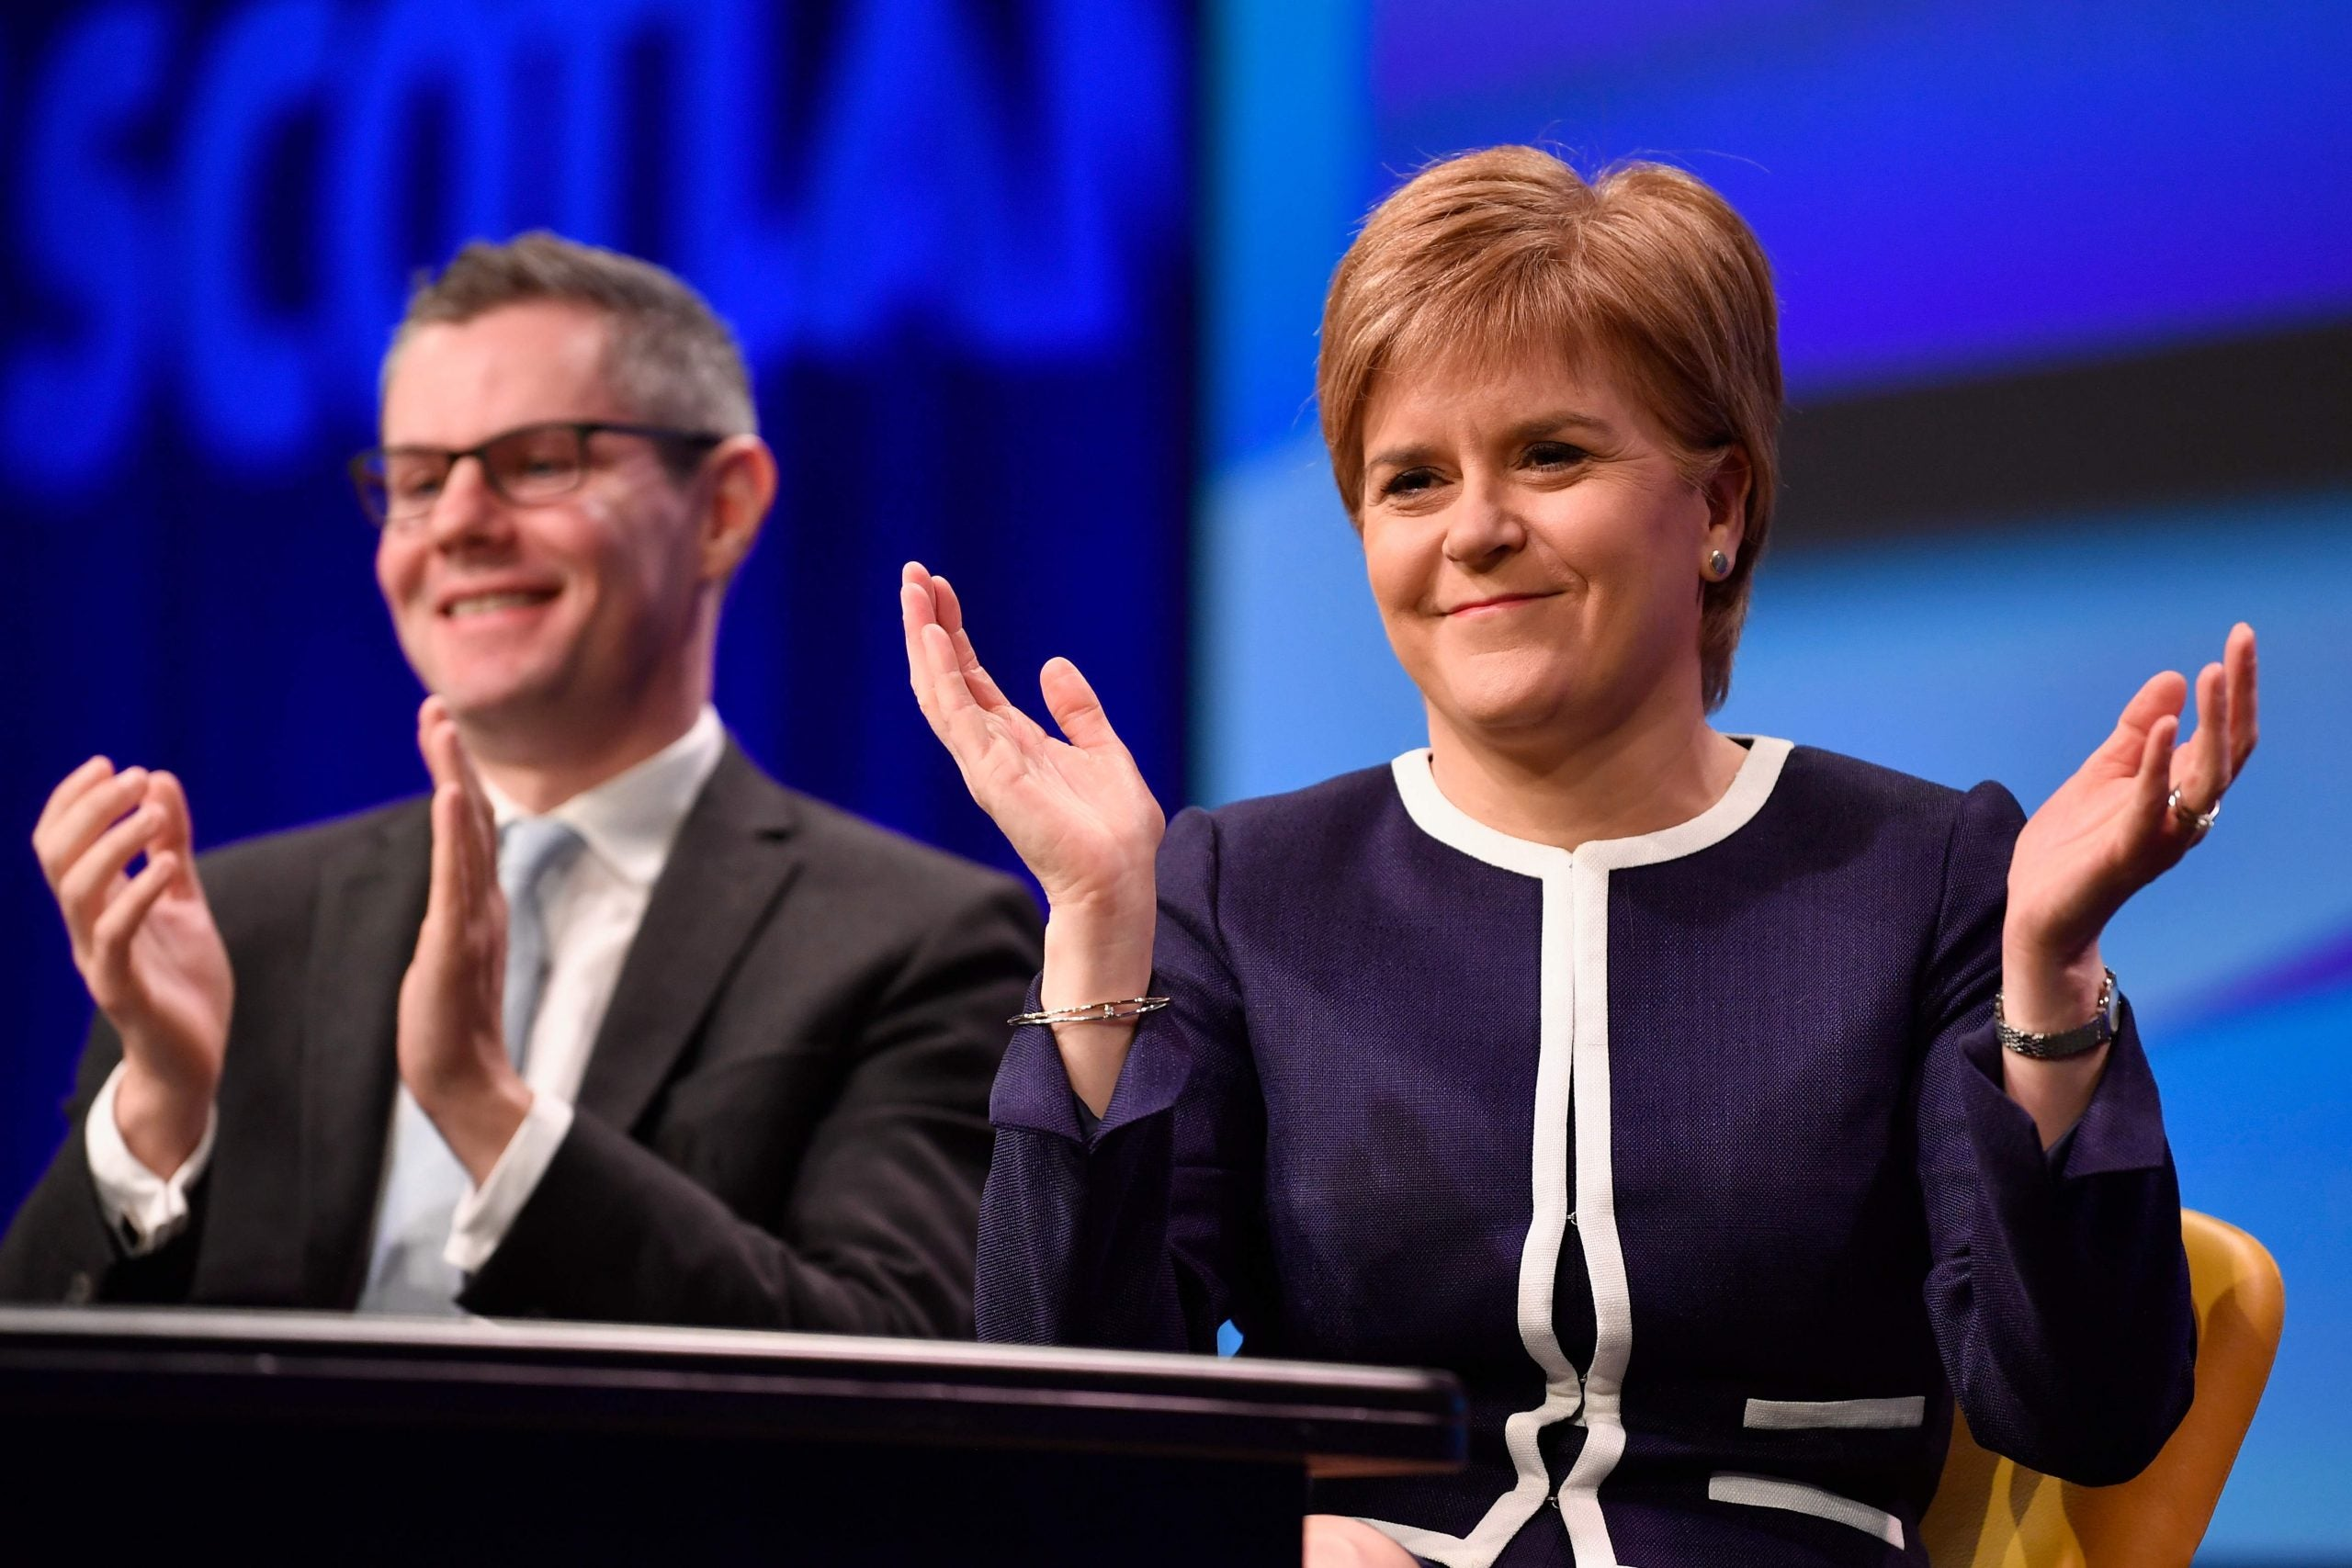 Nicola Sturgeon calmly sets out her independence referendum negotiating position